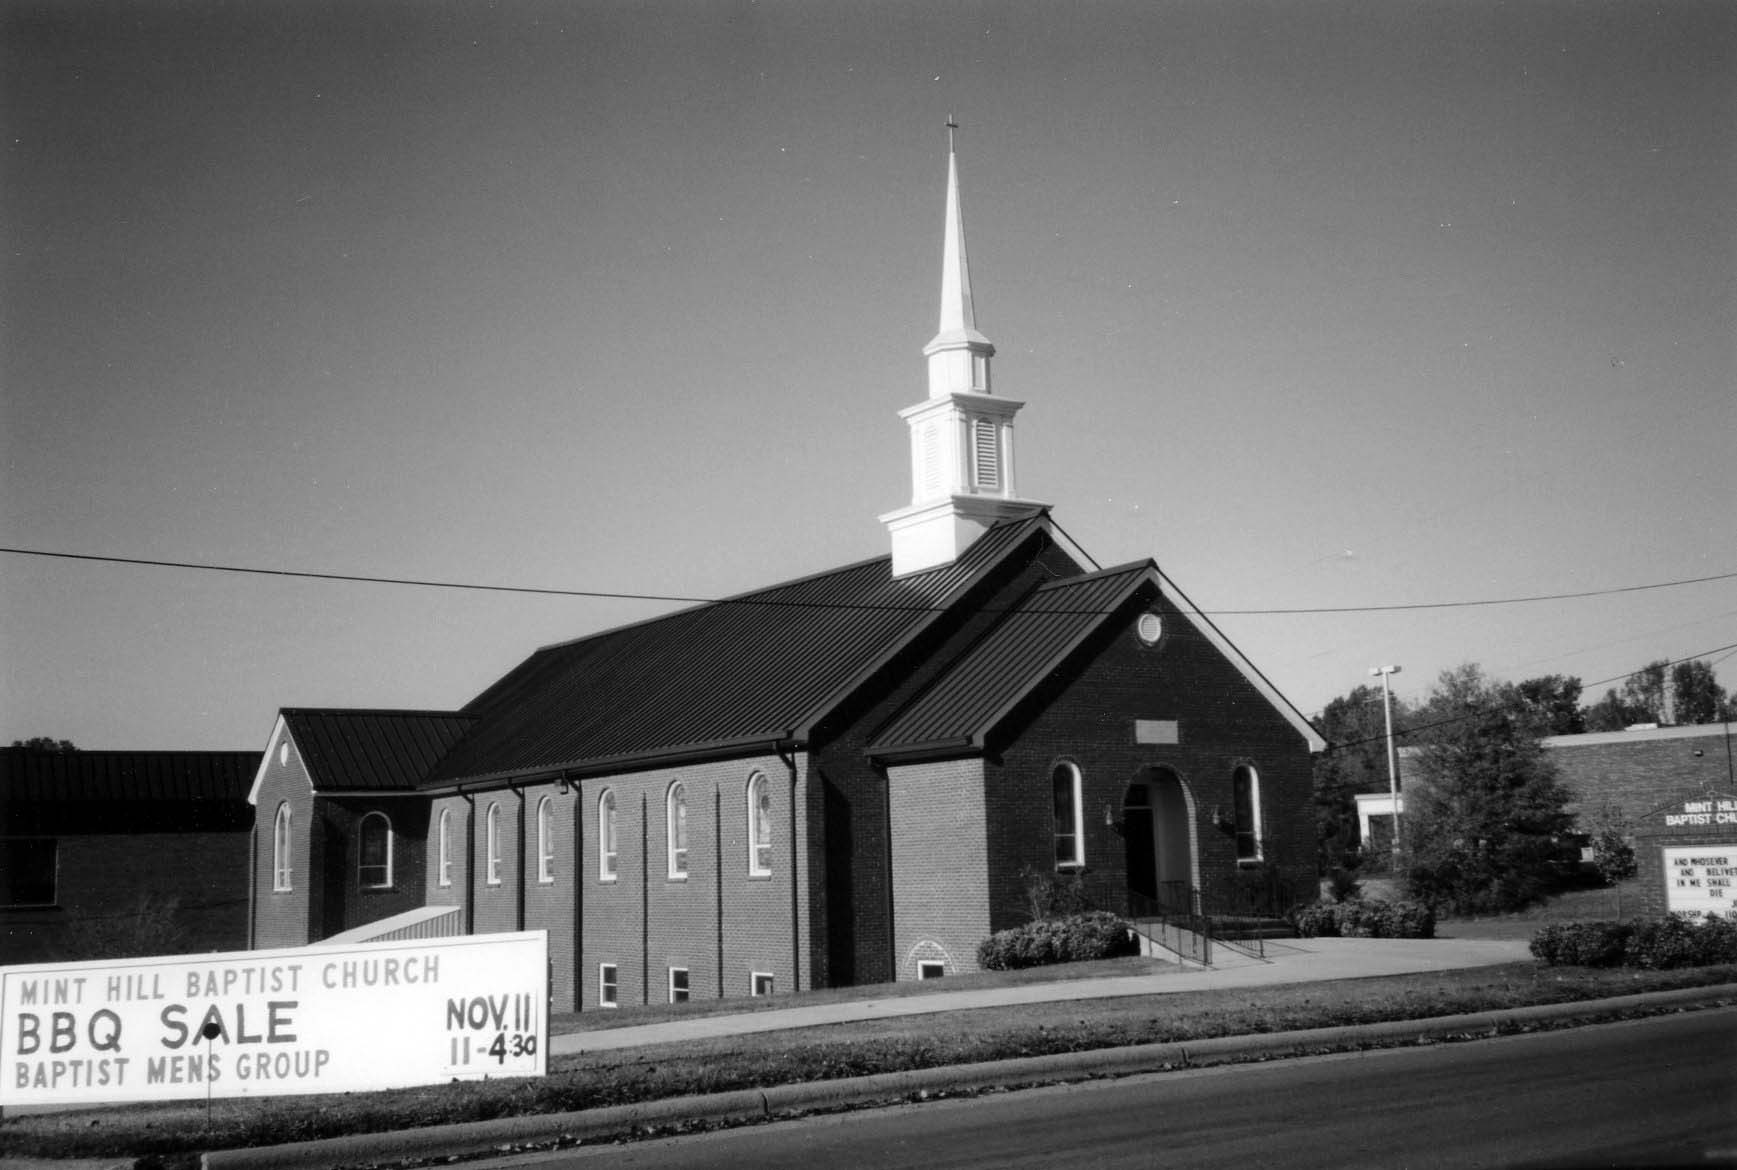 Mint Hill Baptist Church